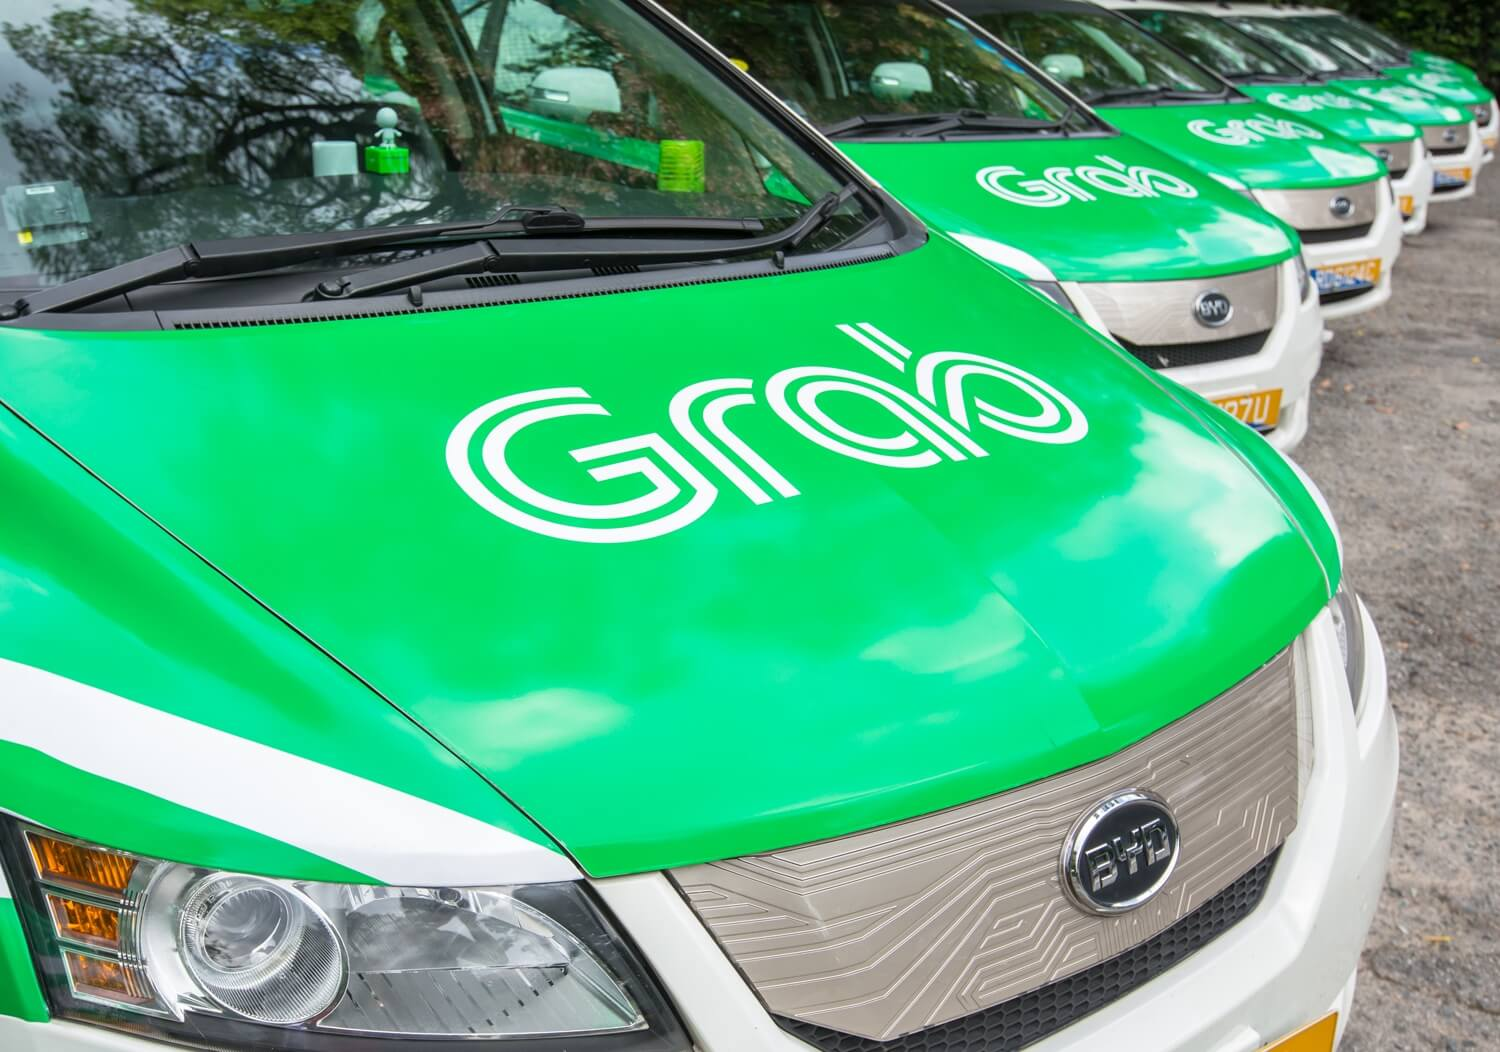 Grab buys Uber's Southeast Asian business following difficult competition